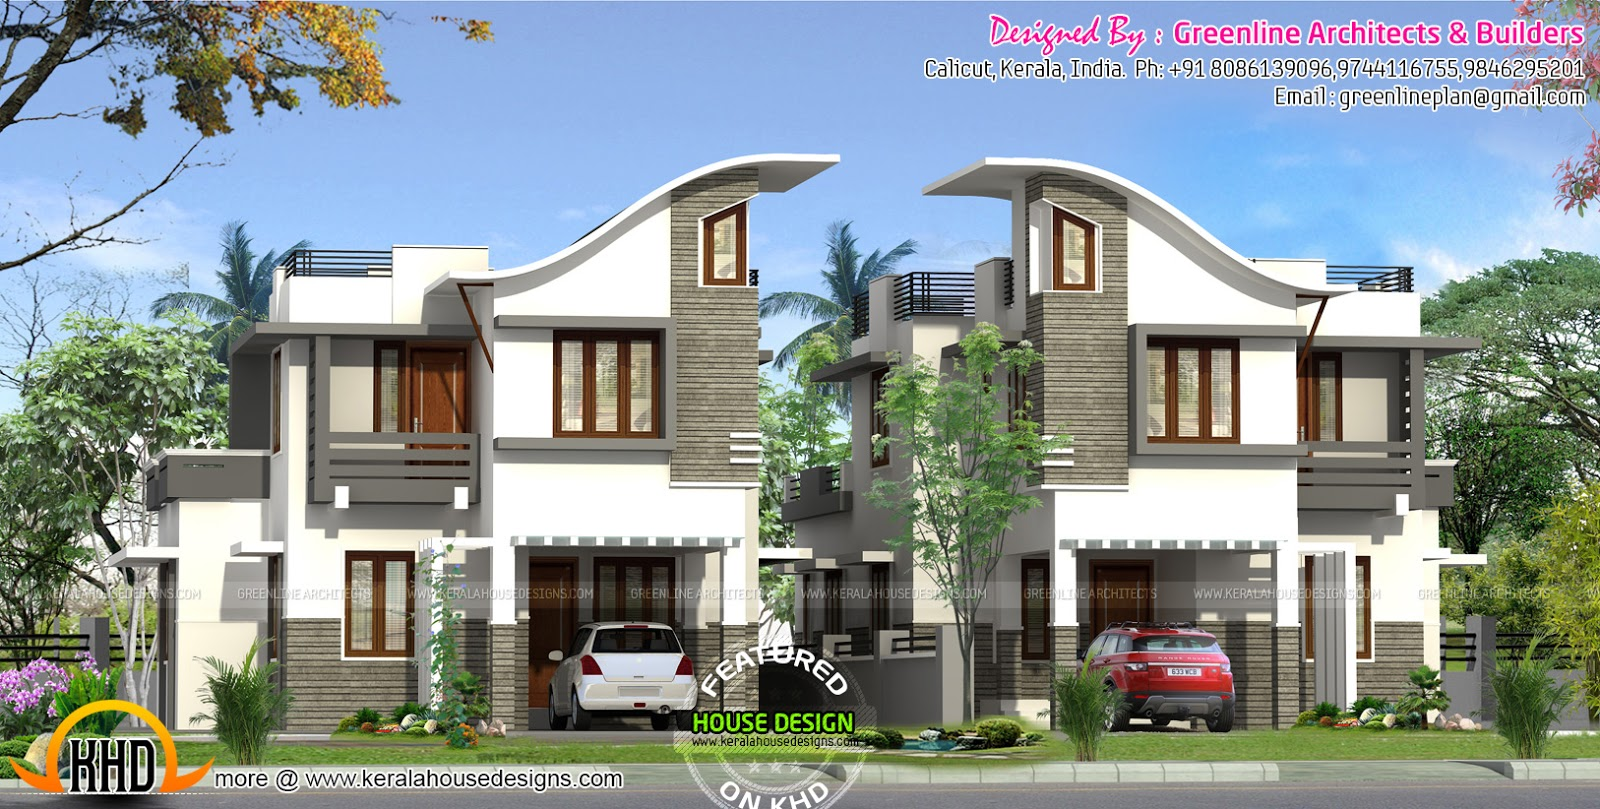 3d home plans and designs html with Twin House Design on Twin House Design besides Native Resthouse Designs moreover Home Exterior Design House Interior in addition Architectural Apartment Rendering also Bungalow Design.